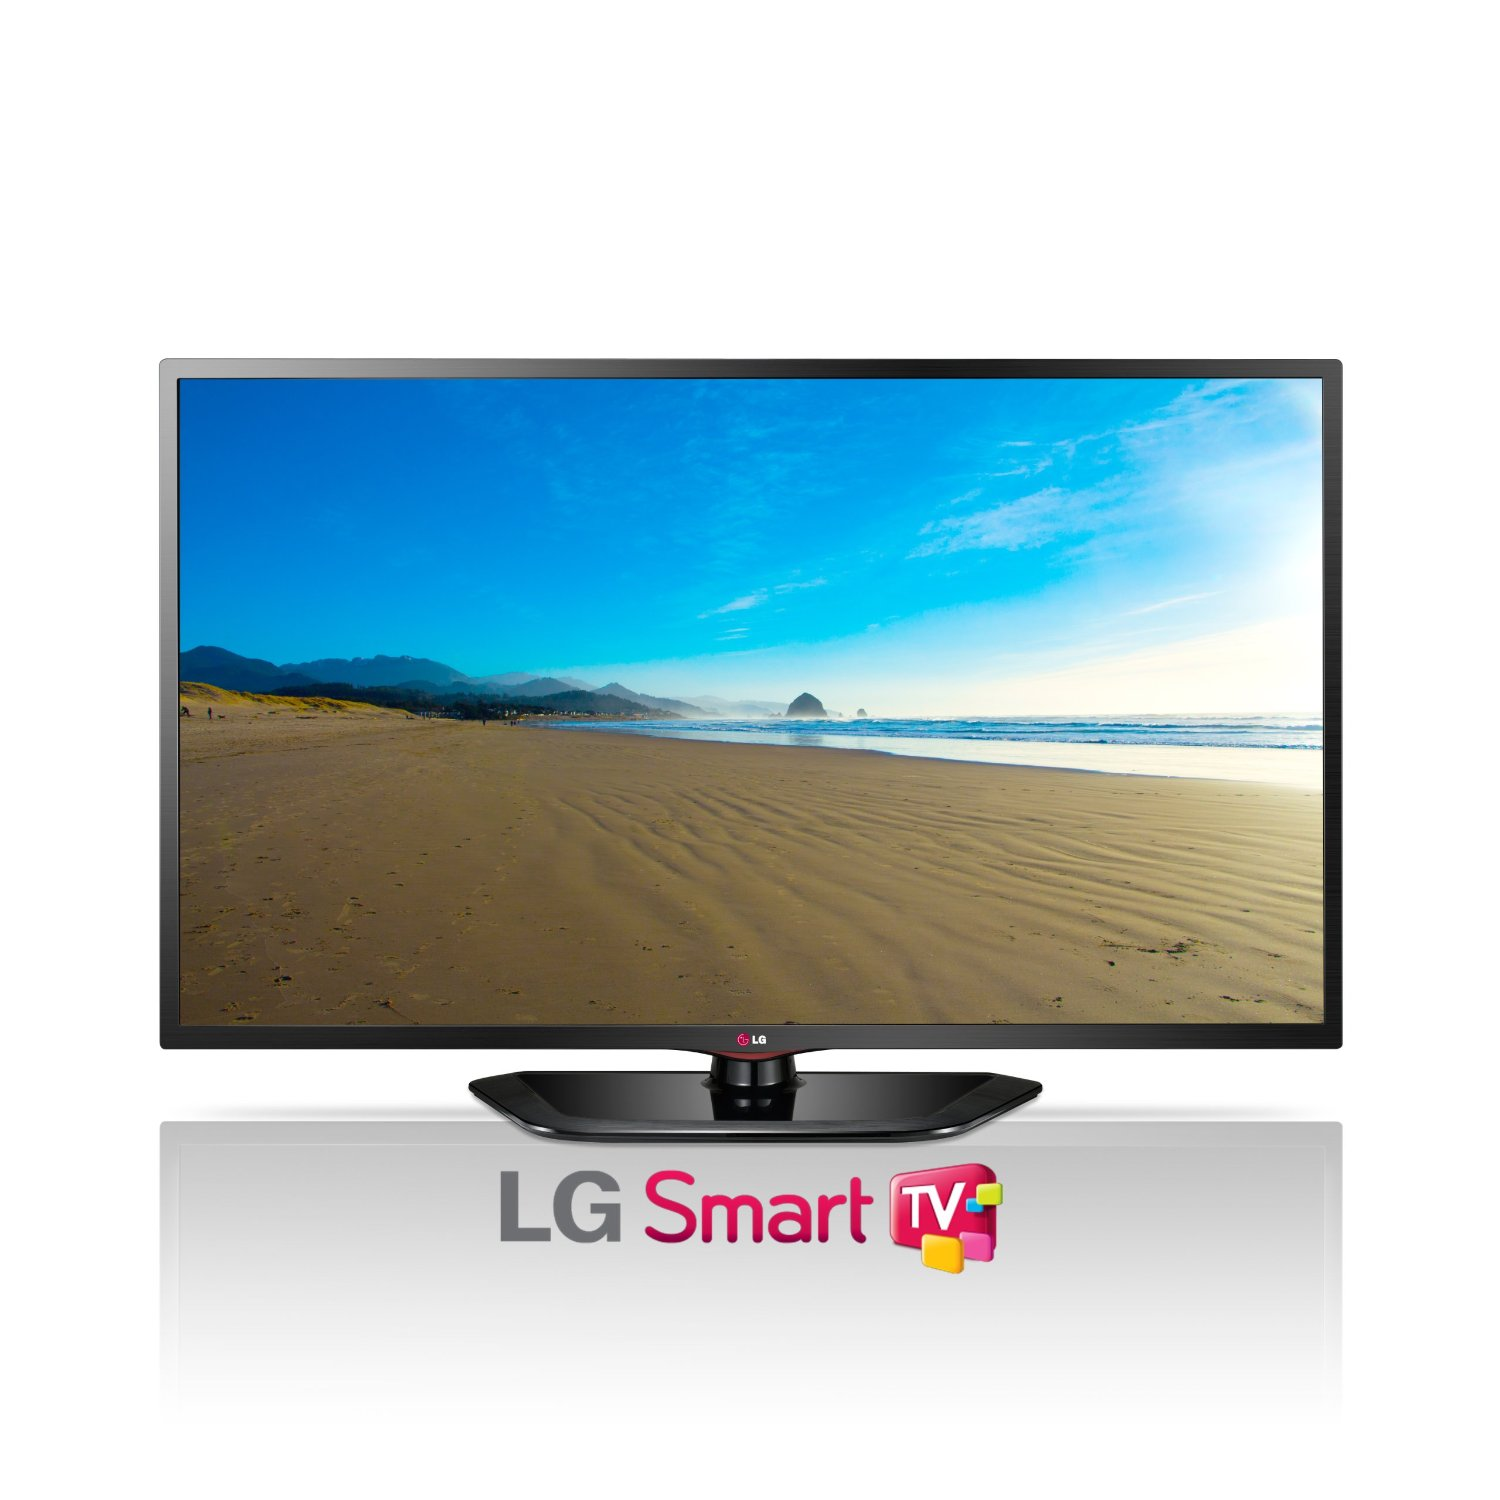 LG 55LN5710 55-Inch 1080p 120Hz Smart LED HDTV Review ~ LG 55LN5710 Review